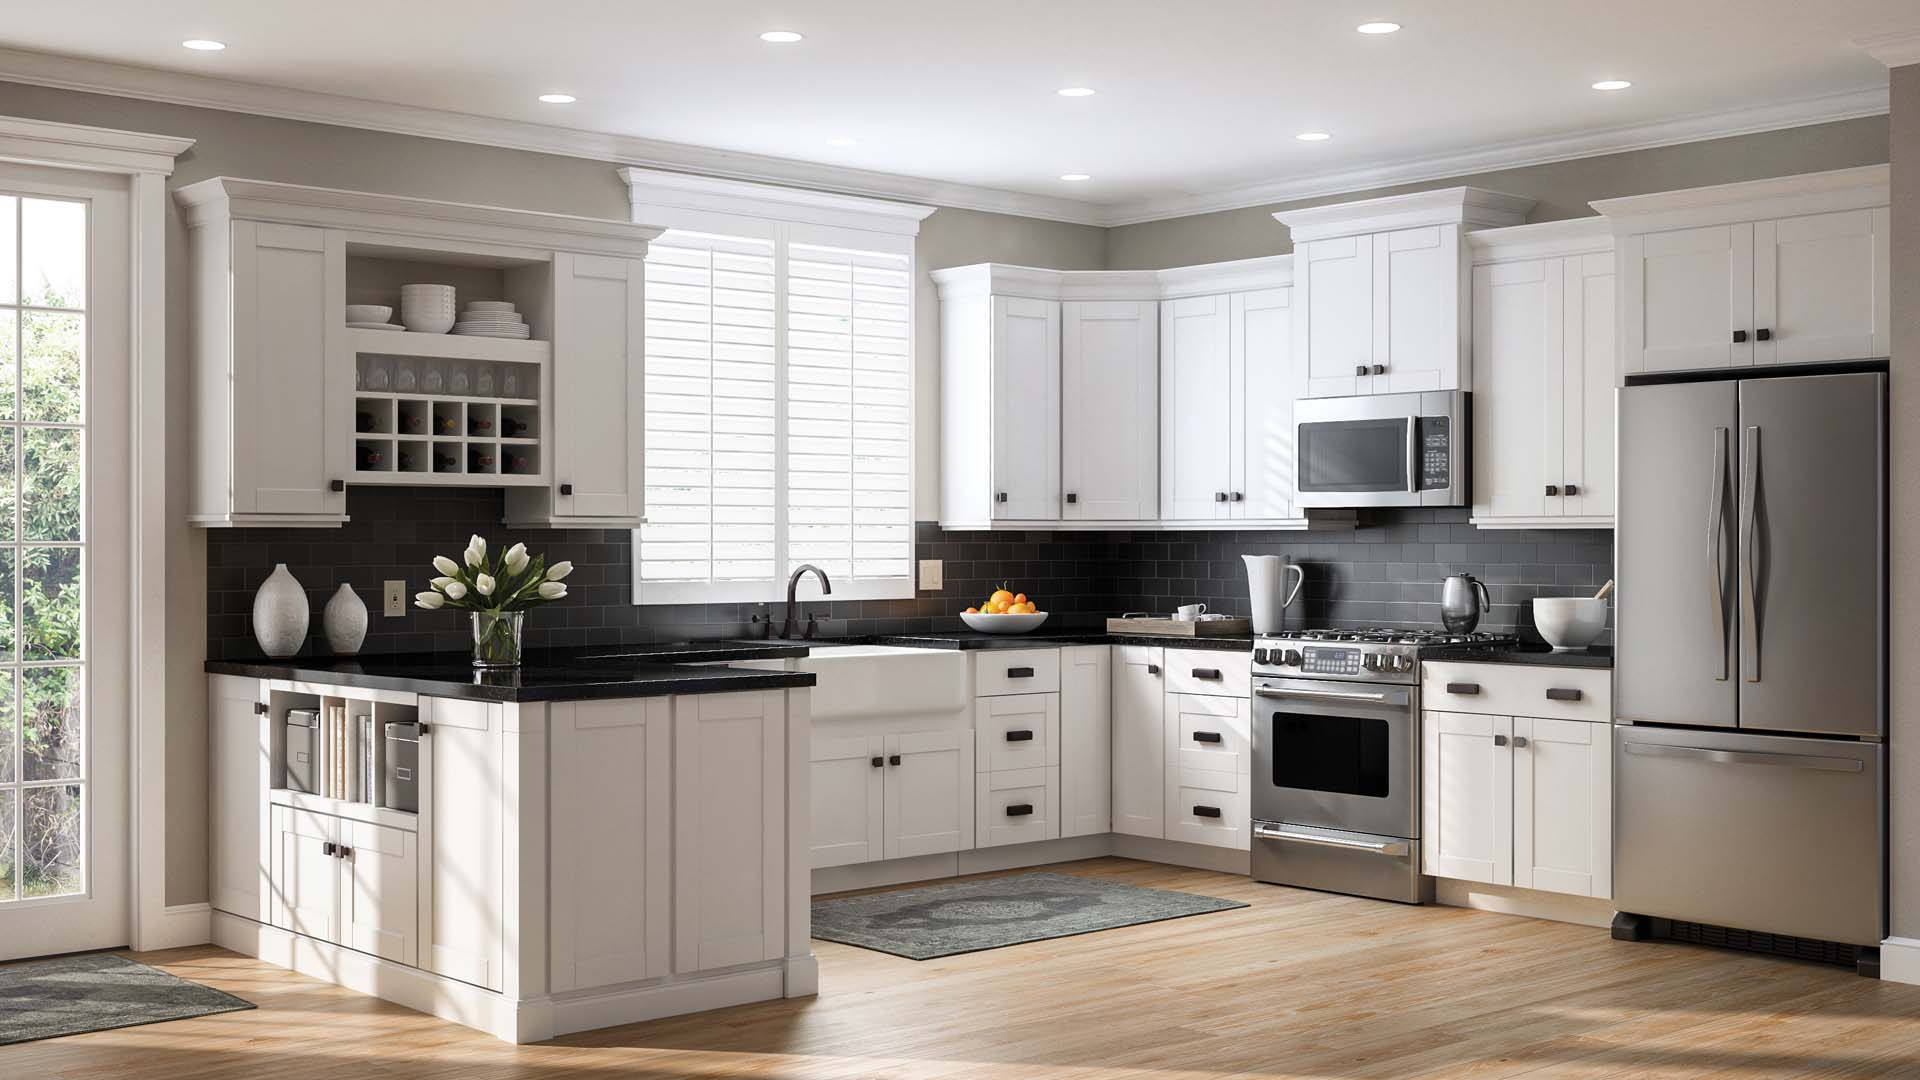 Galaxy Cabinetry